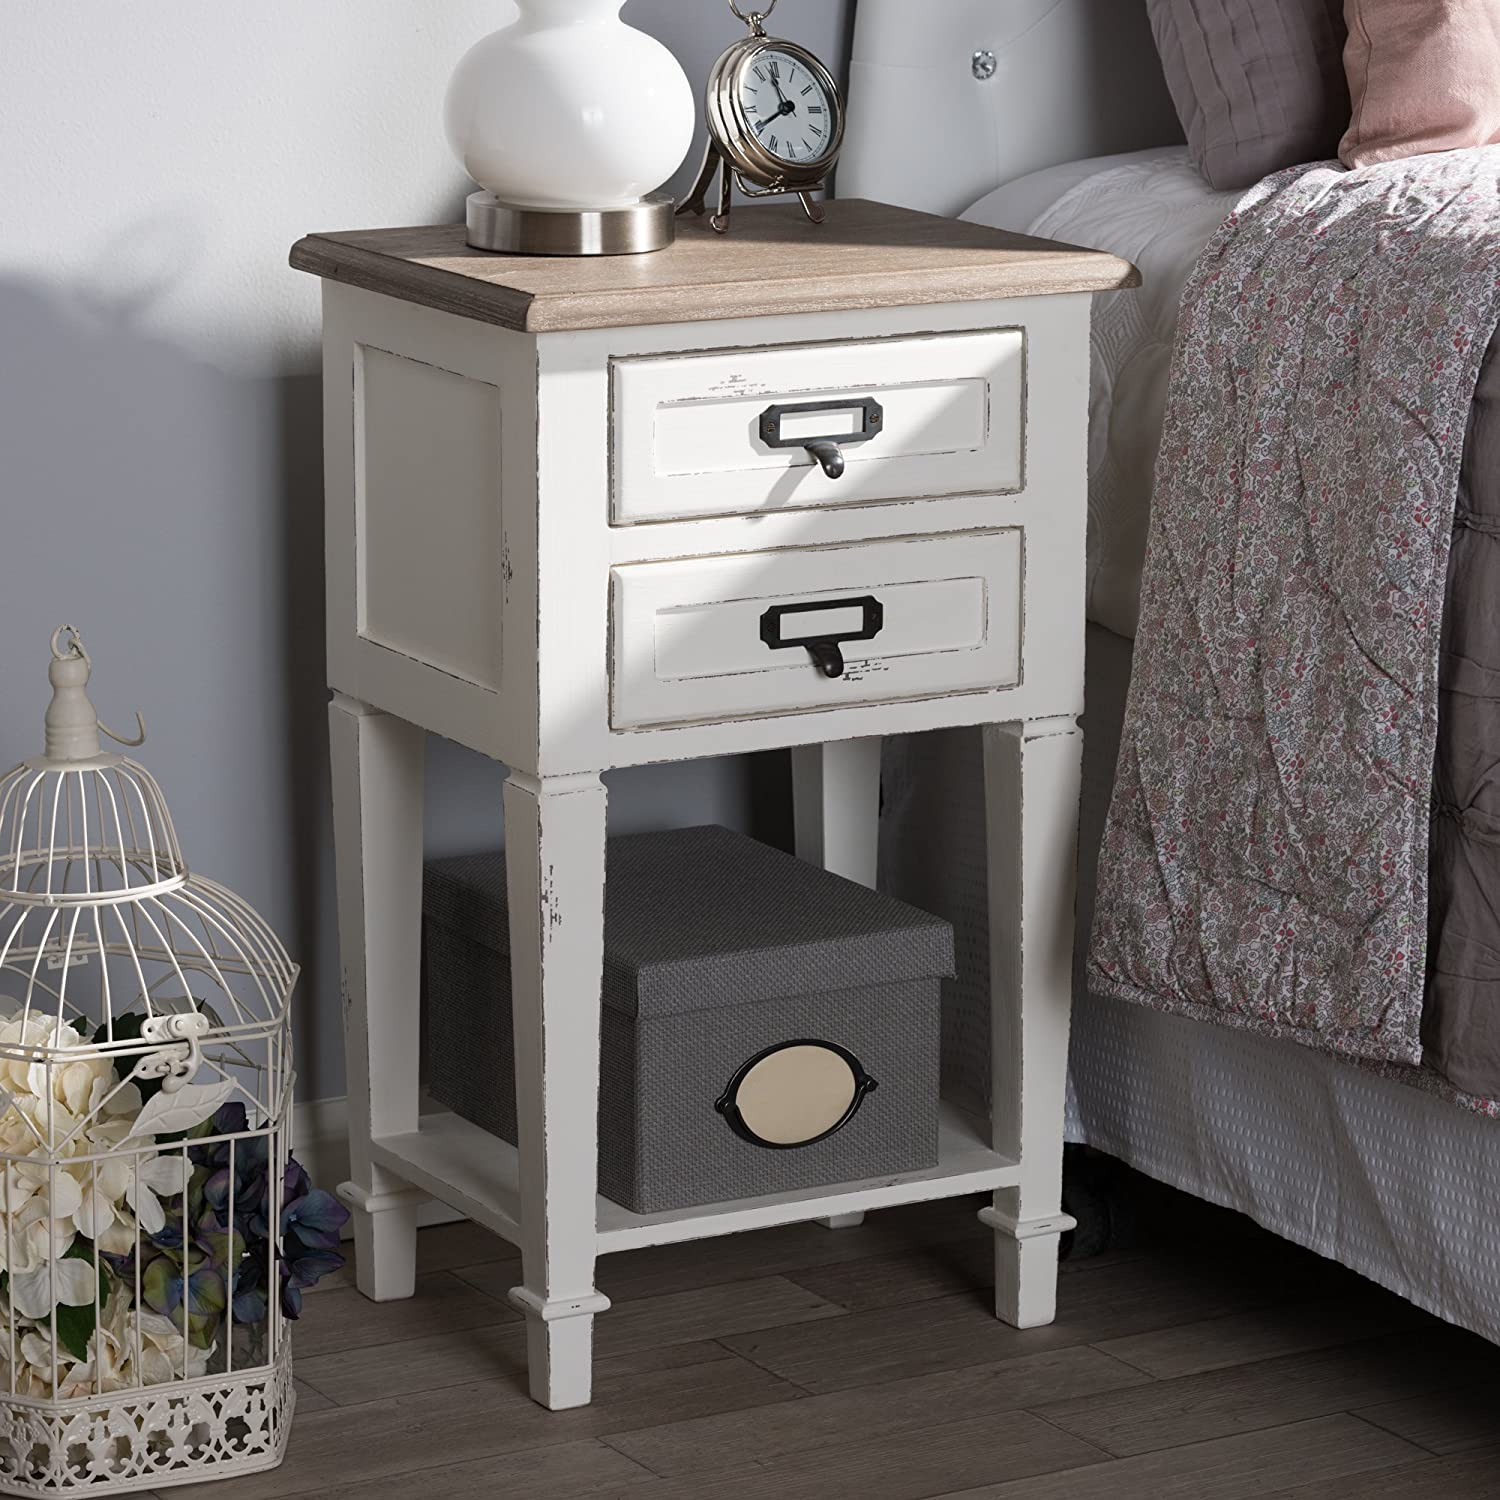 Baxton Studio Nightstand in Distressed Natural and White Finish